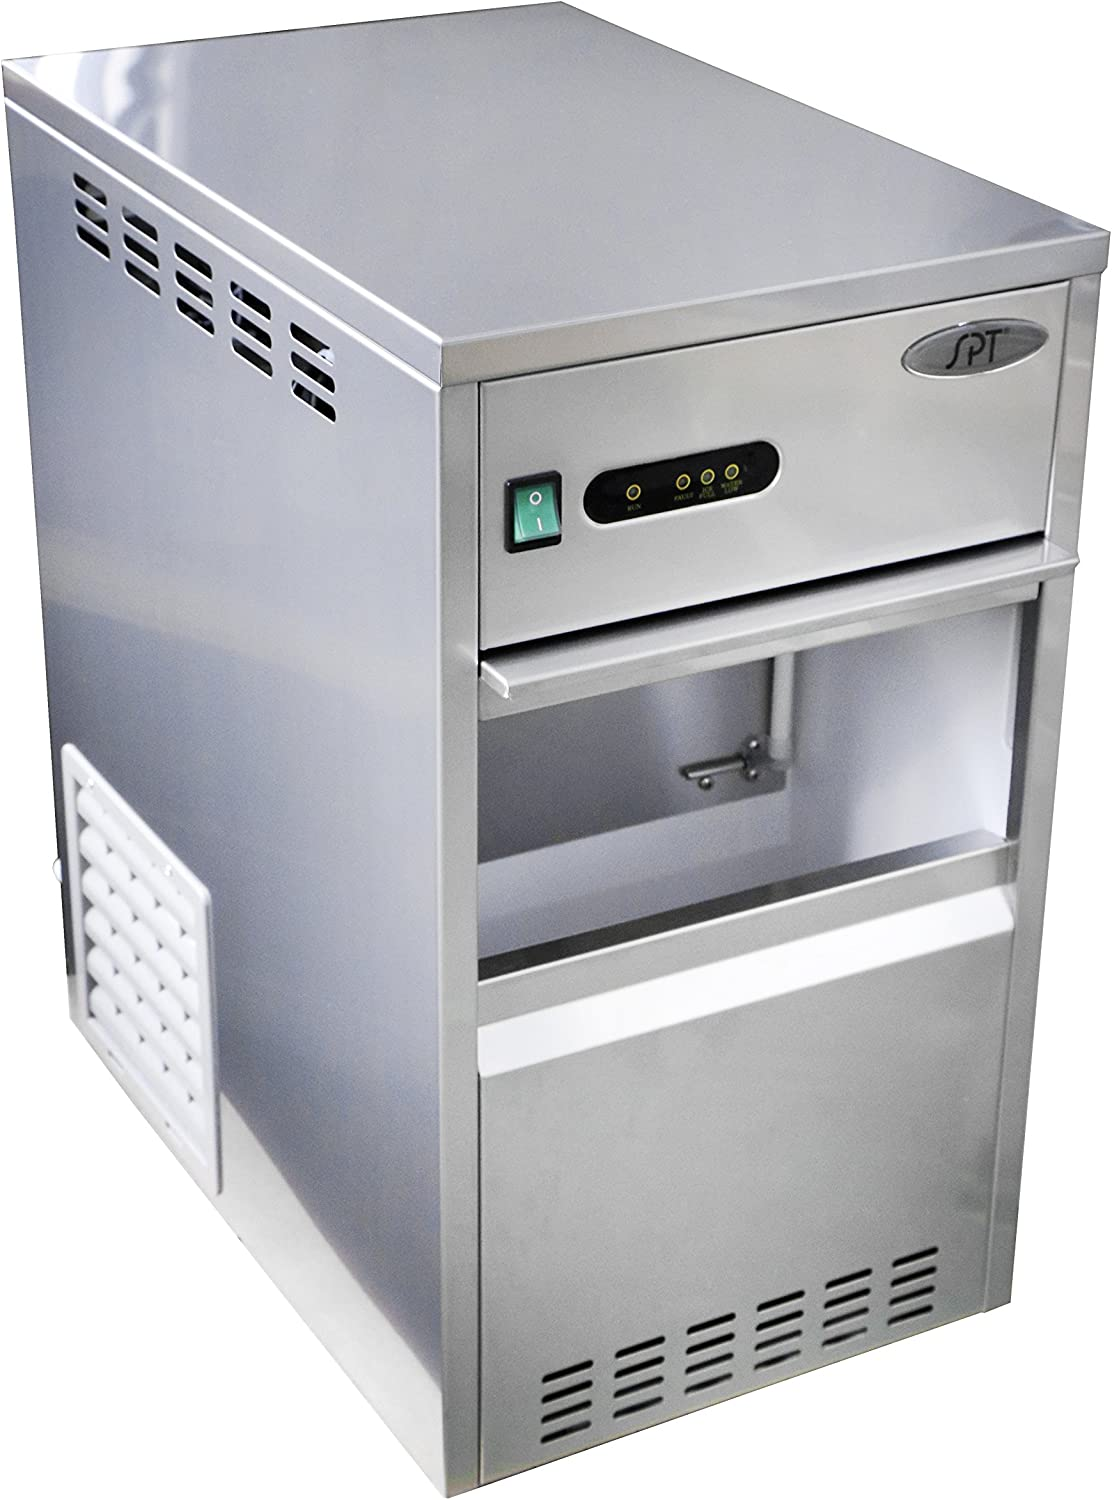 SZB-41 Automatic Flake Ice Maker